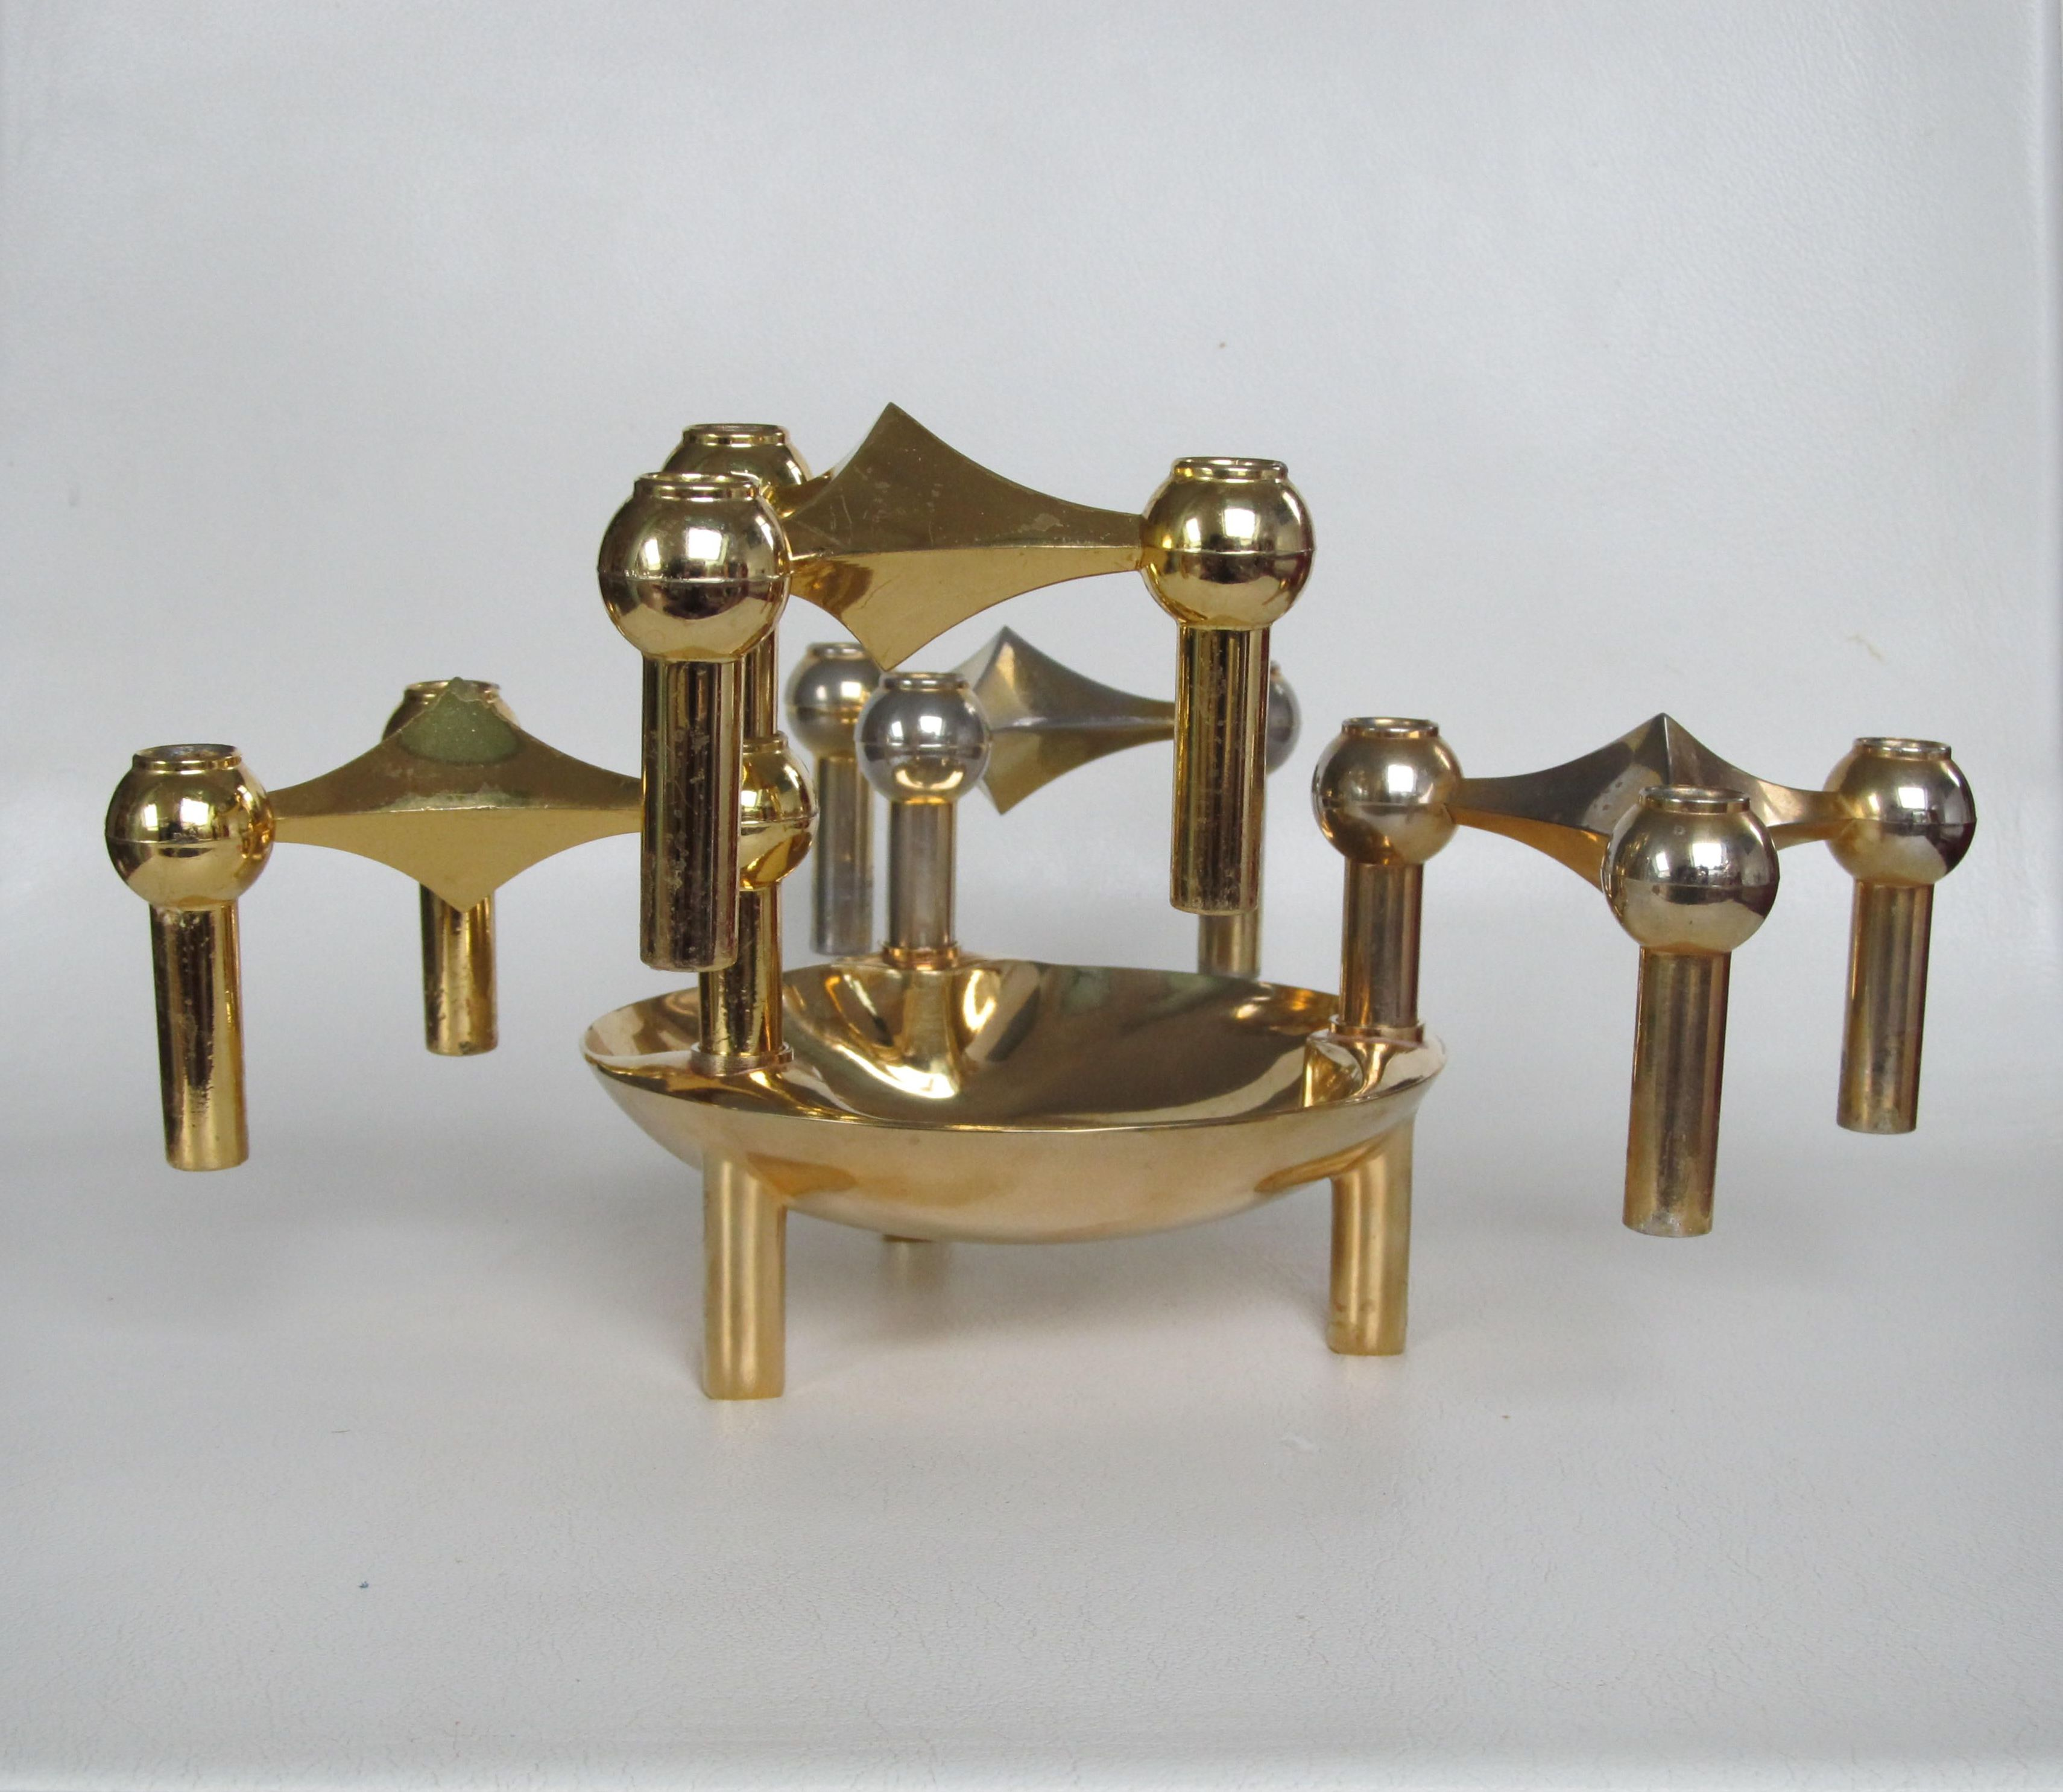 Nagel Bmf Golden Candlesticks And Bowl